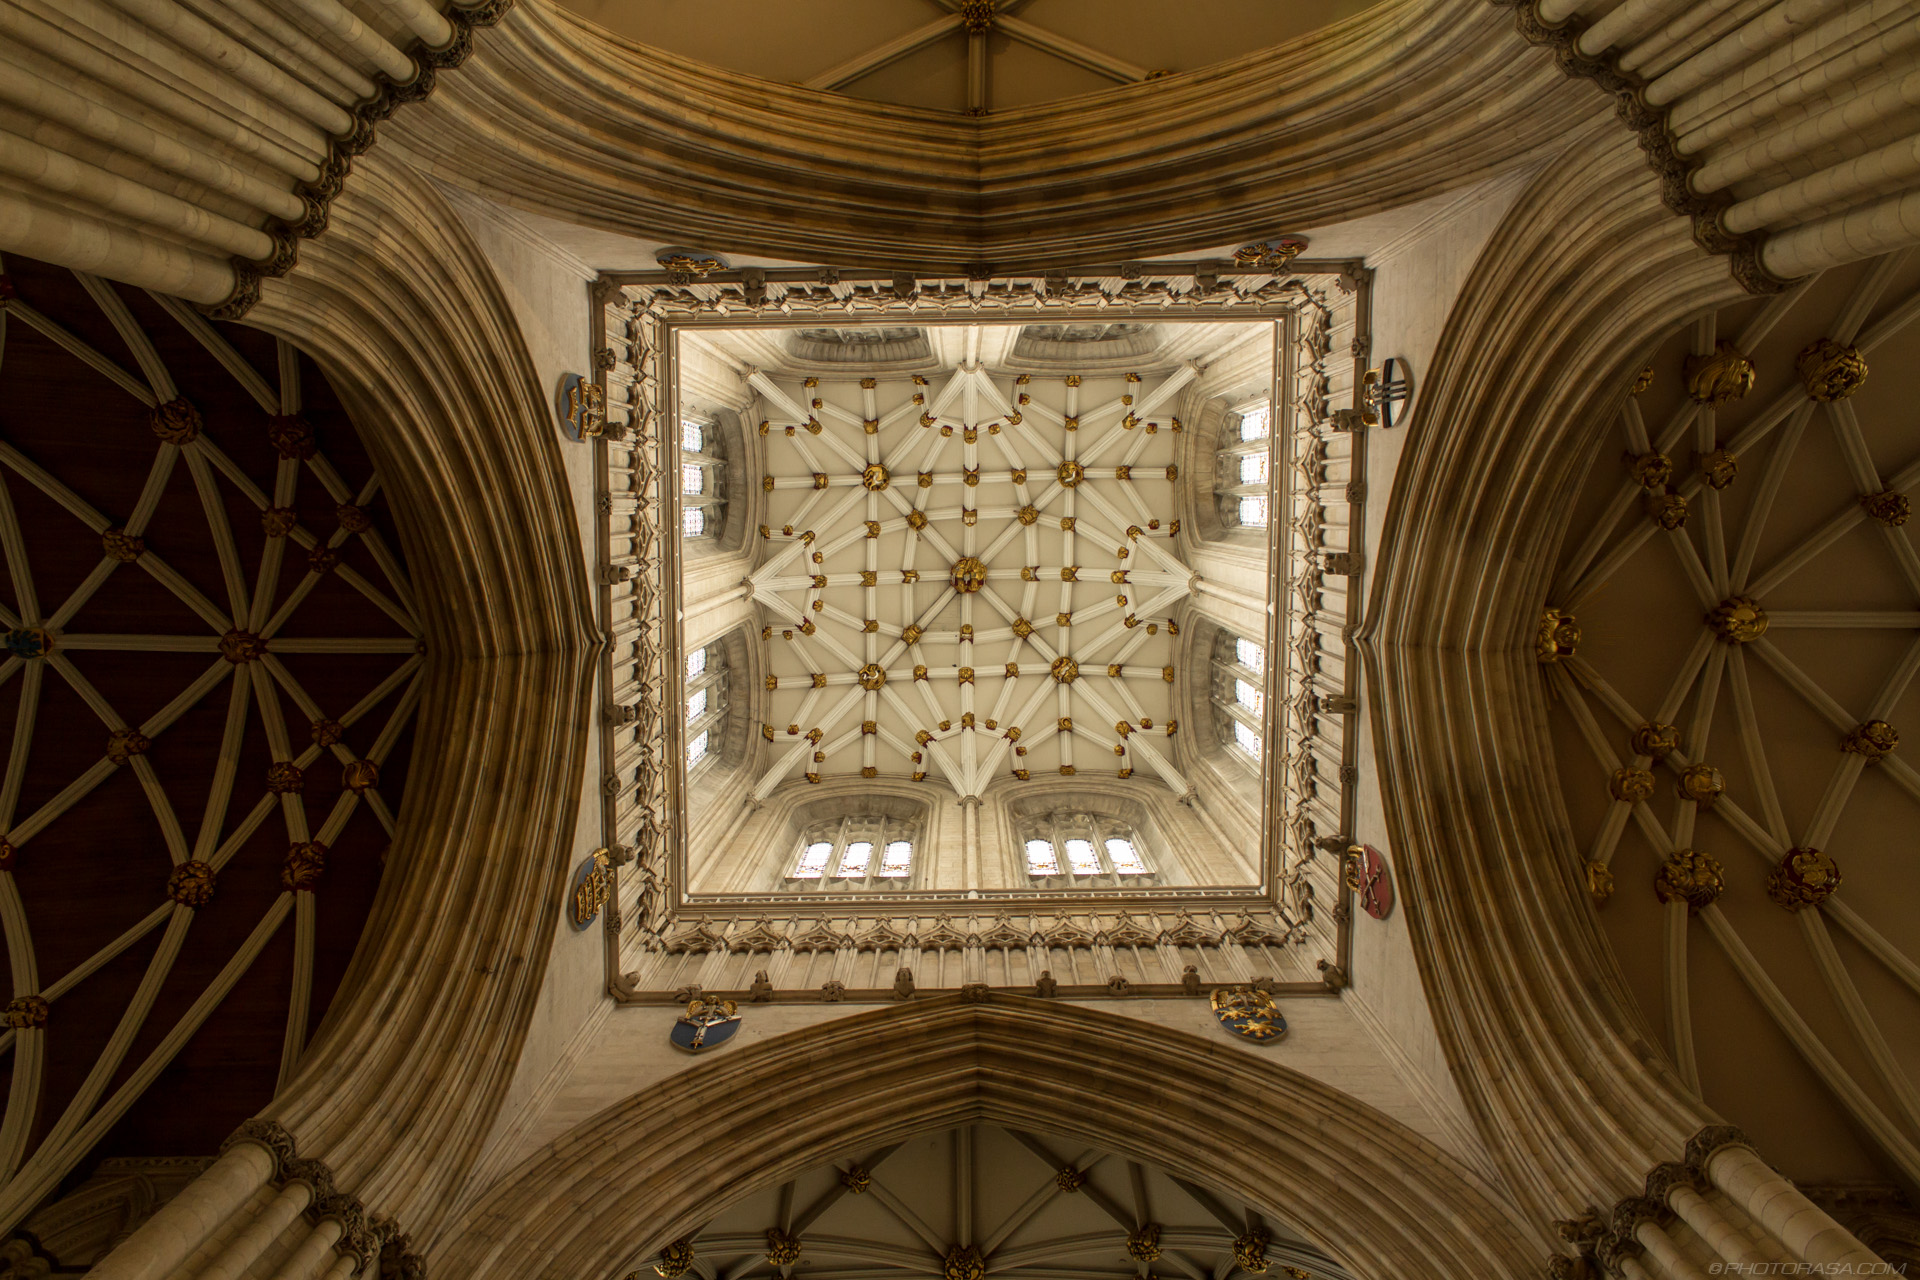 https://photorasa.com/yorkminster-cathedral/central-tower-from-below/